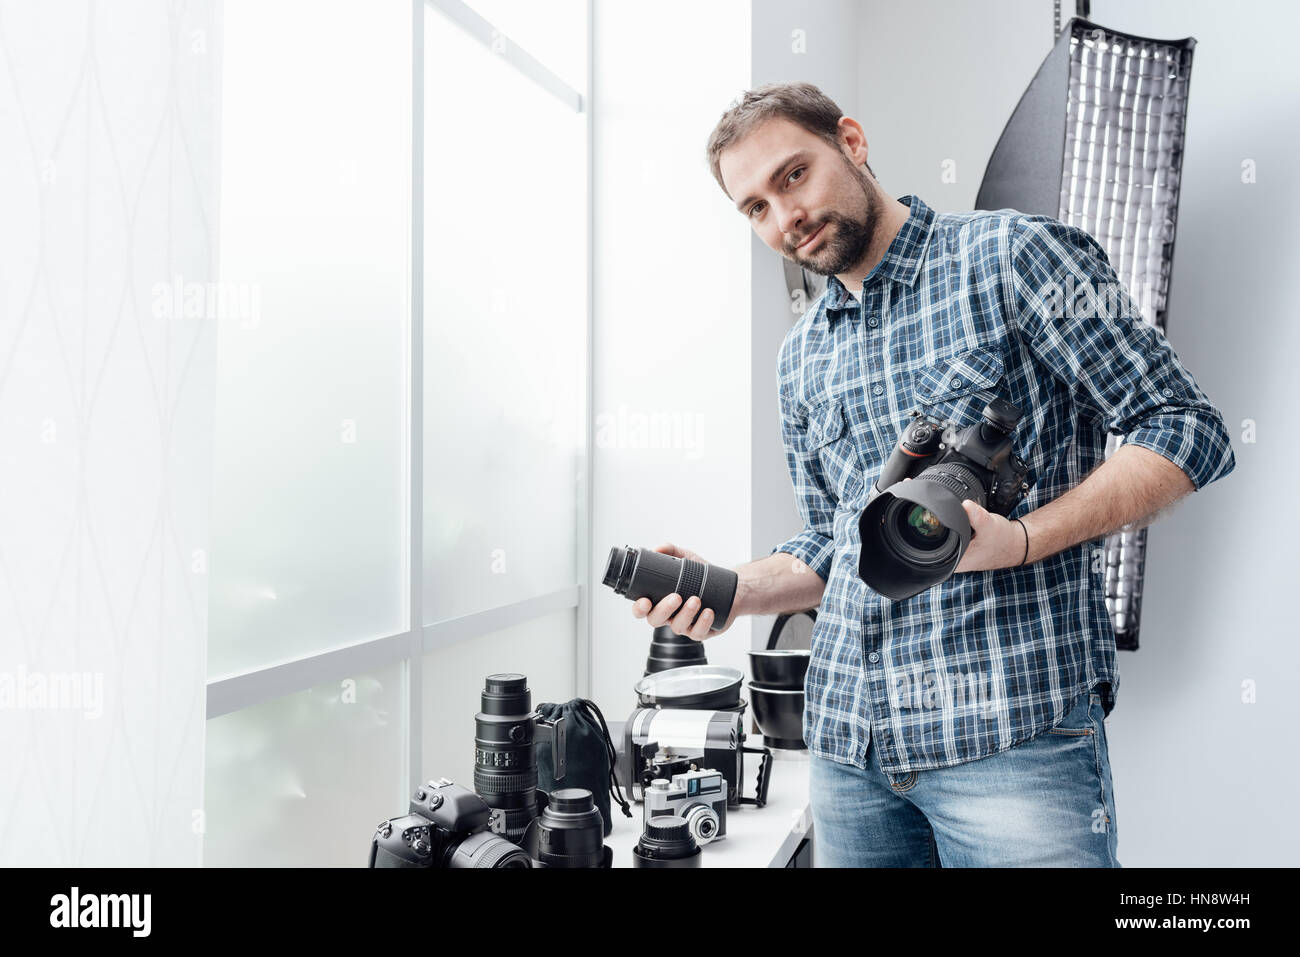 Photographer in his studio, he is holding a digital camera and choosing the right lens for his photo shoot Stock Photo